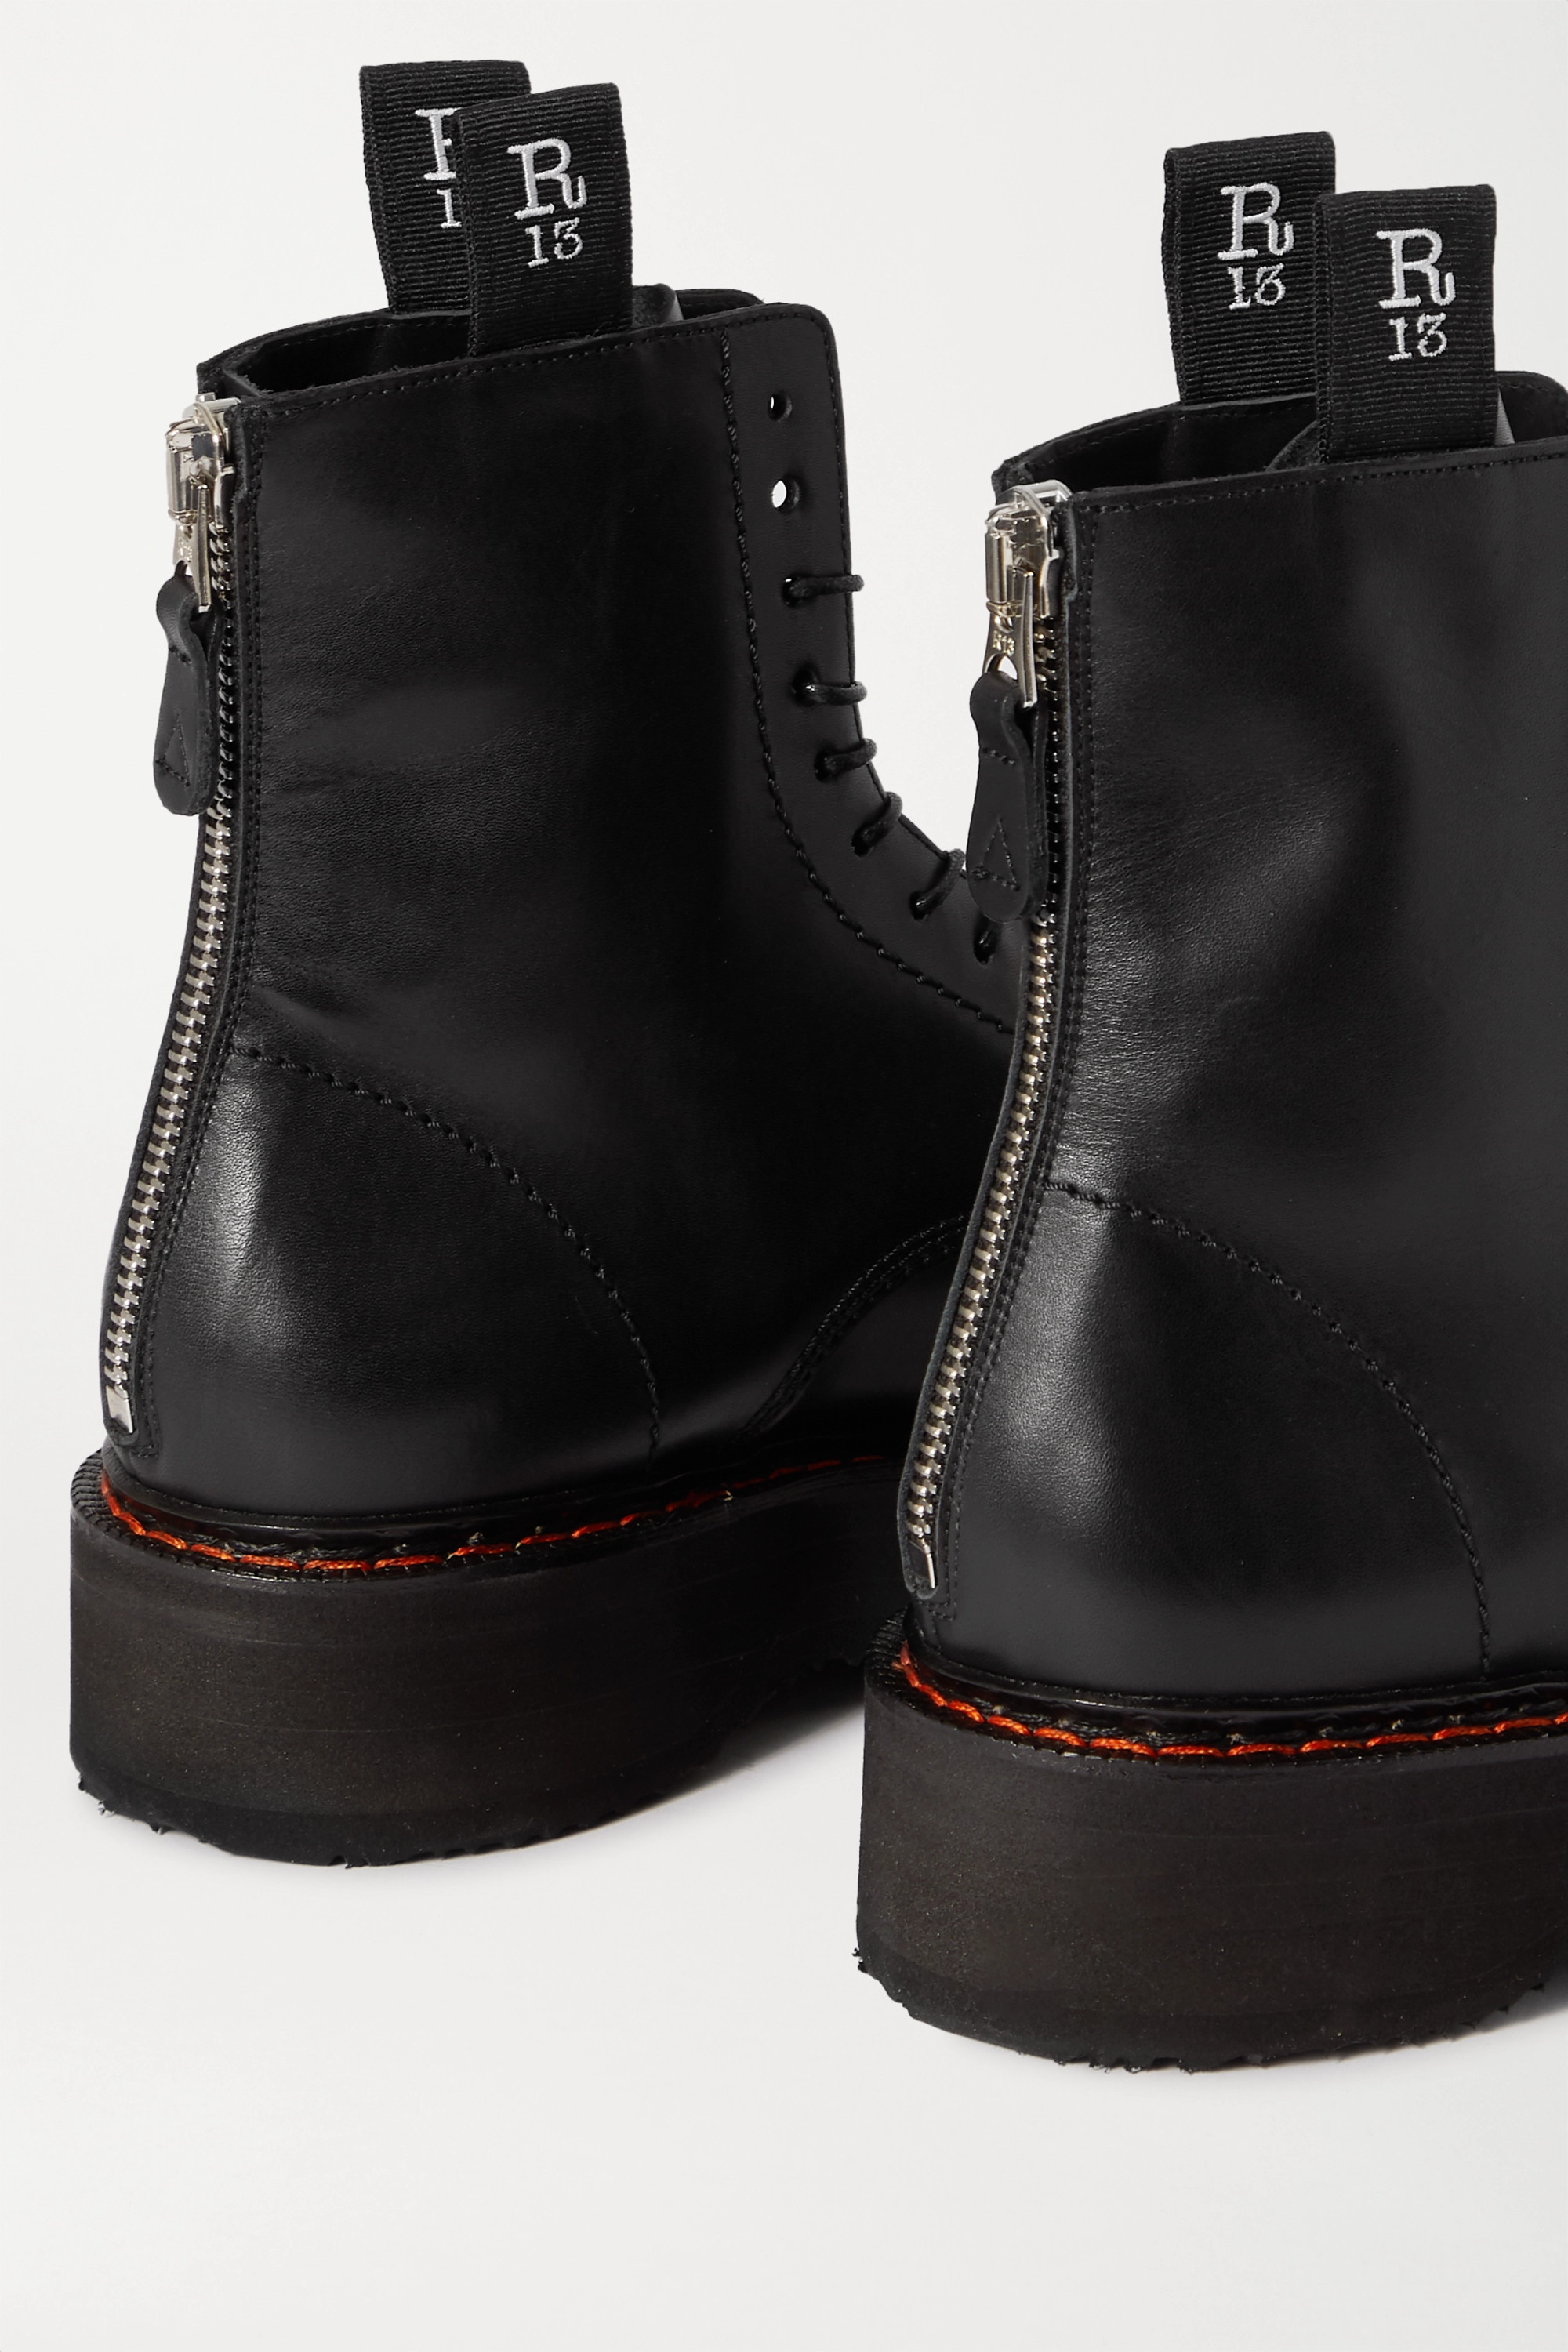 R13 Leather ankle boots